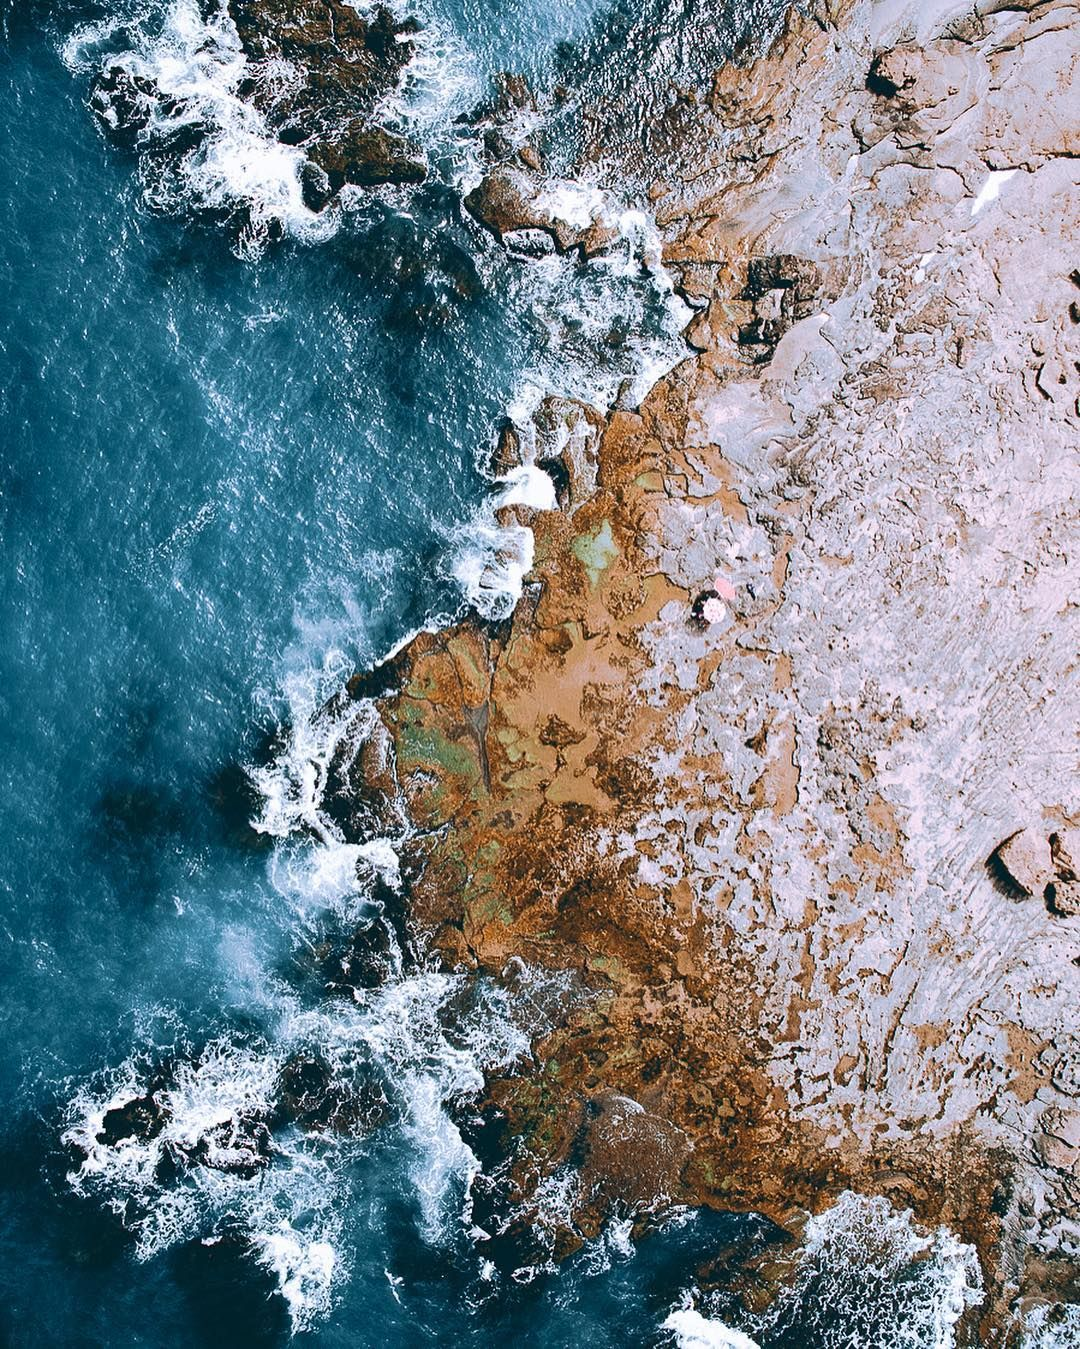 Stunning Drone Photography By Tobias Hagg Aerial Photography Drone Digital Photography Backdrops Drone Photography